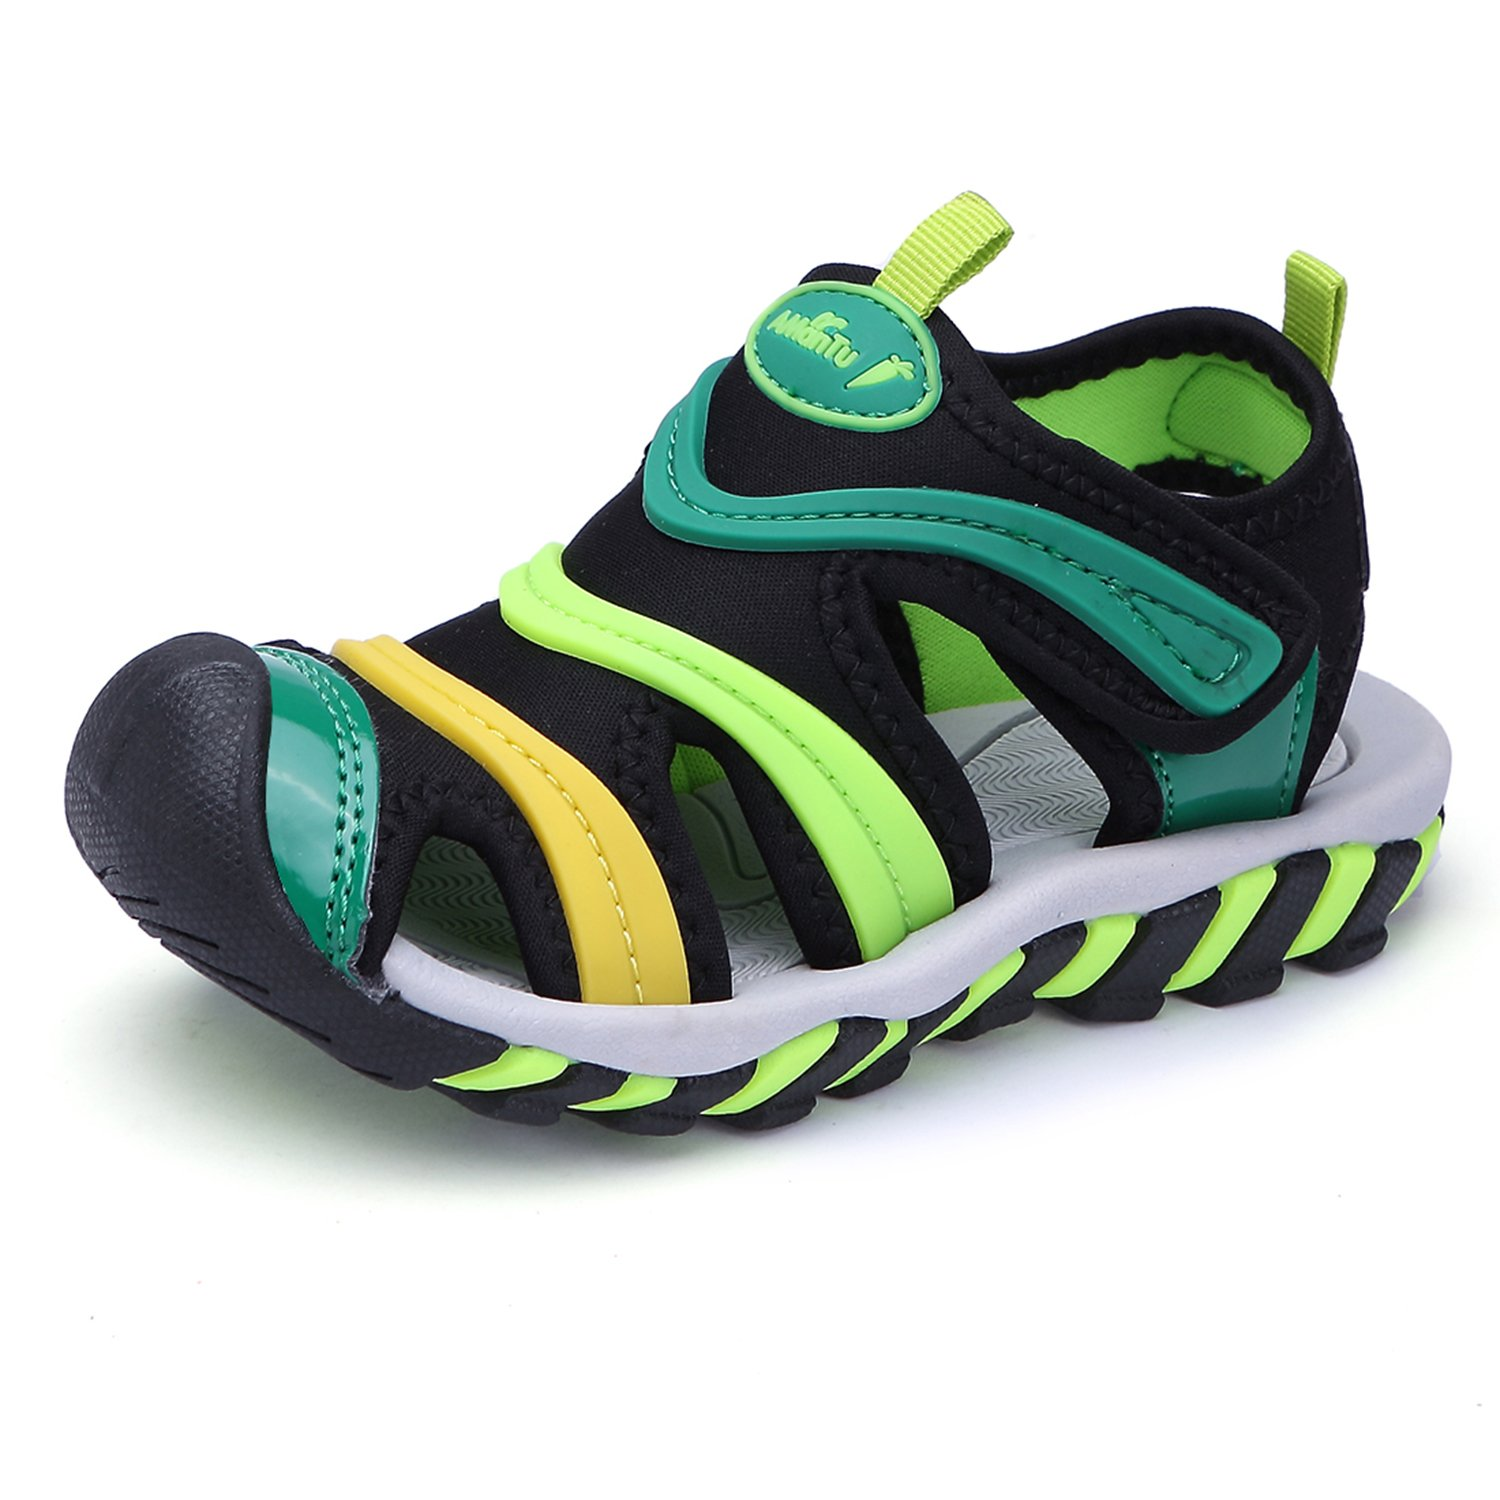 BTDREAM Boys and Girls Sports Sandals Breathable Closed-Toe Summer Outdoor Athletic Beach Shoes